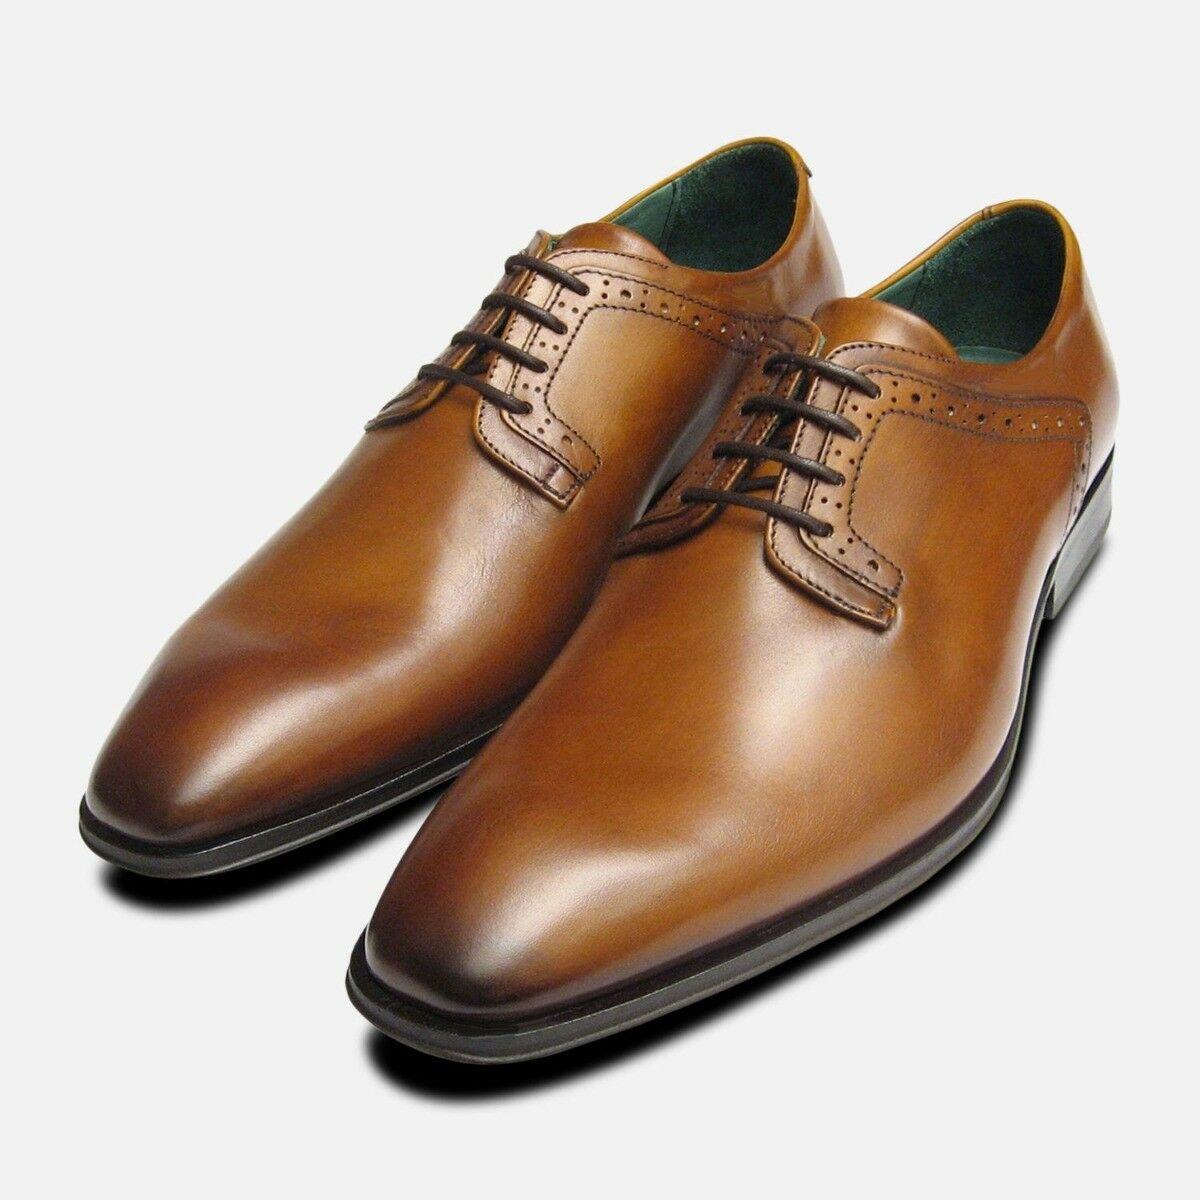 Plain Toe Lace Up Designer shoes by Exceed Footwear